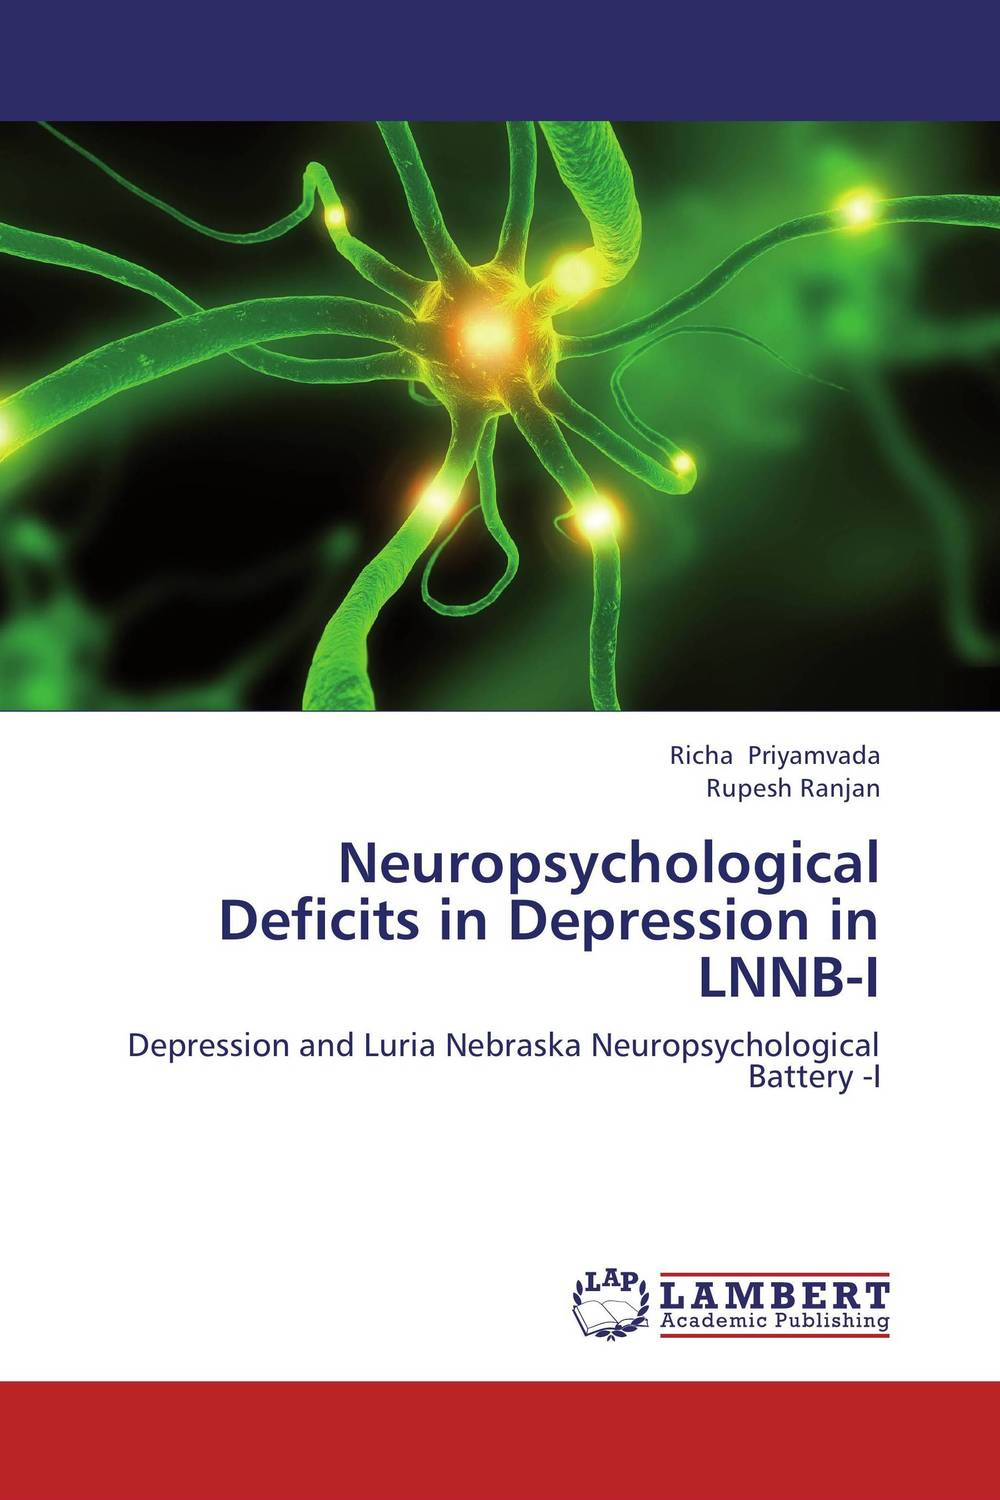 Neuropsychological Deficits in Depression in LNNB-I link for tractor parts or other items not found in the store covers the items as agreed